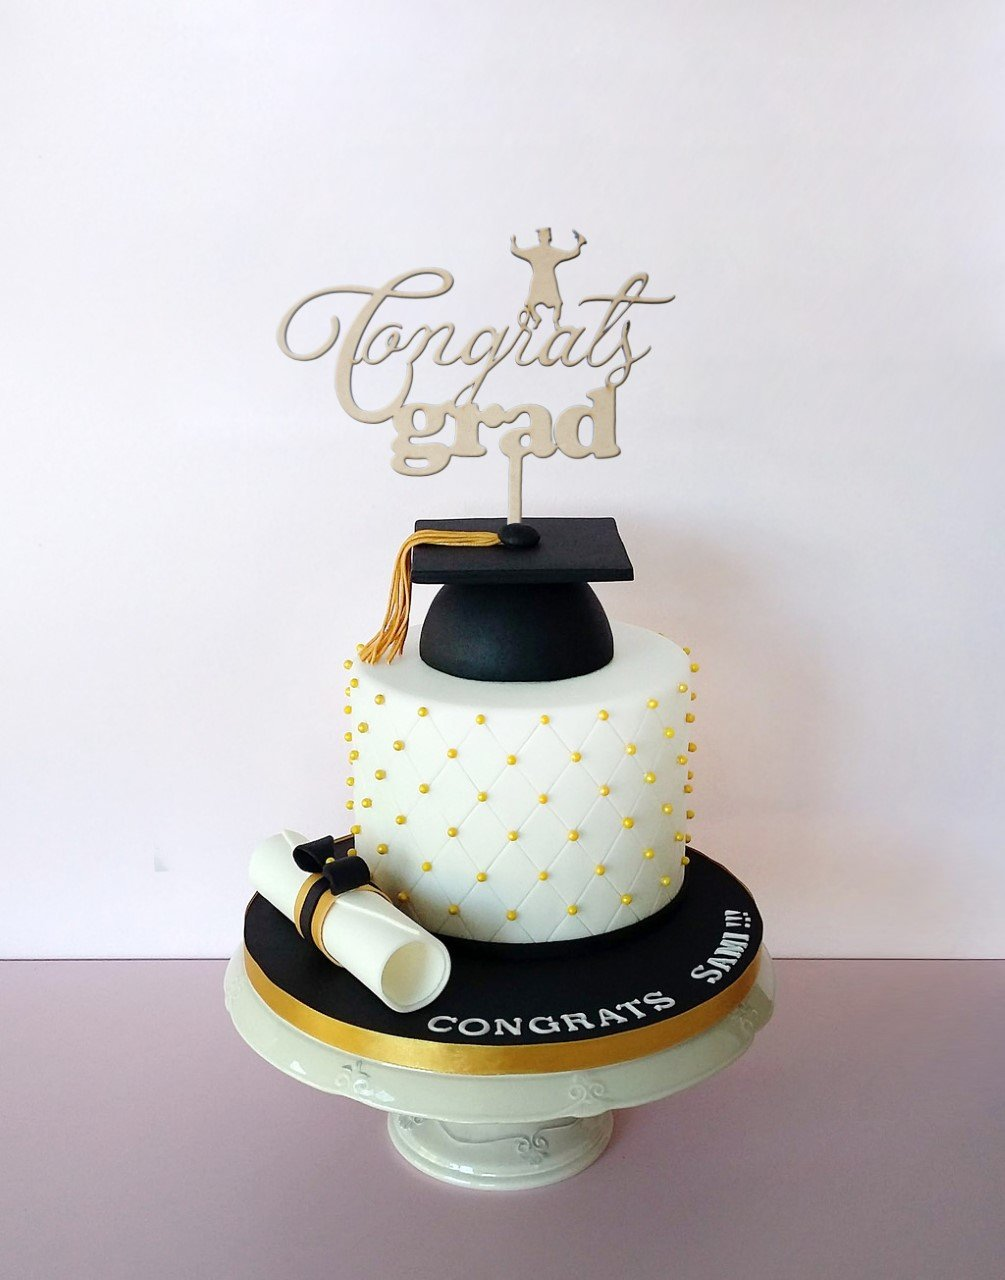 Cake Topper Graduation Congrats Grad 7 X9 inches Laser cut MDF Color Natural